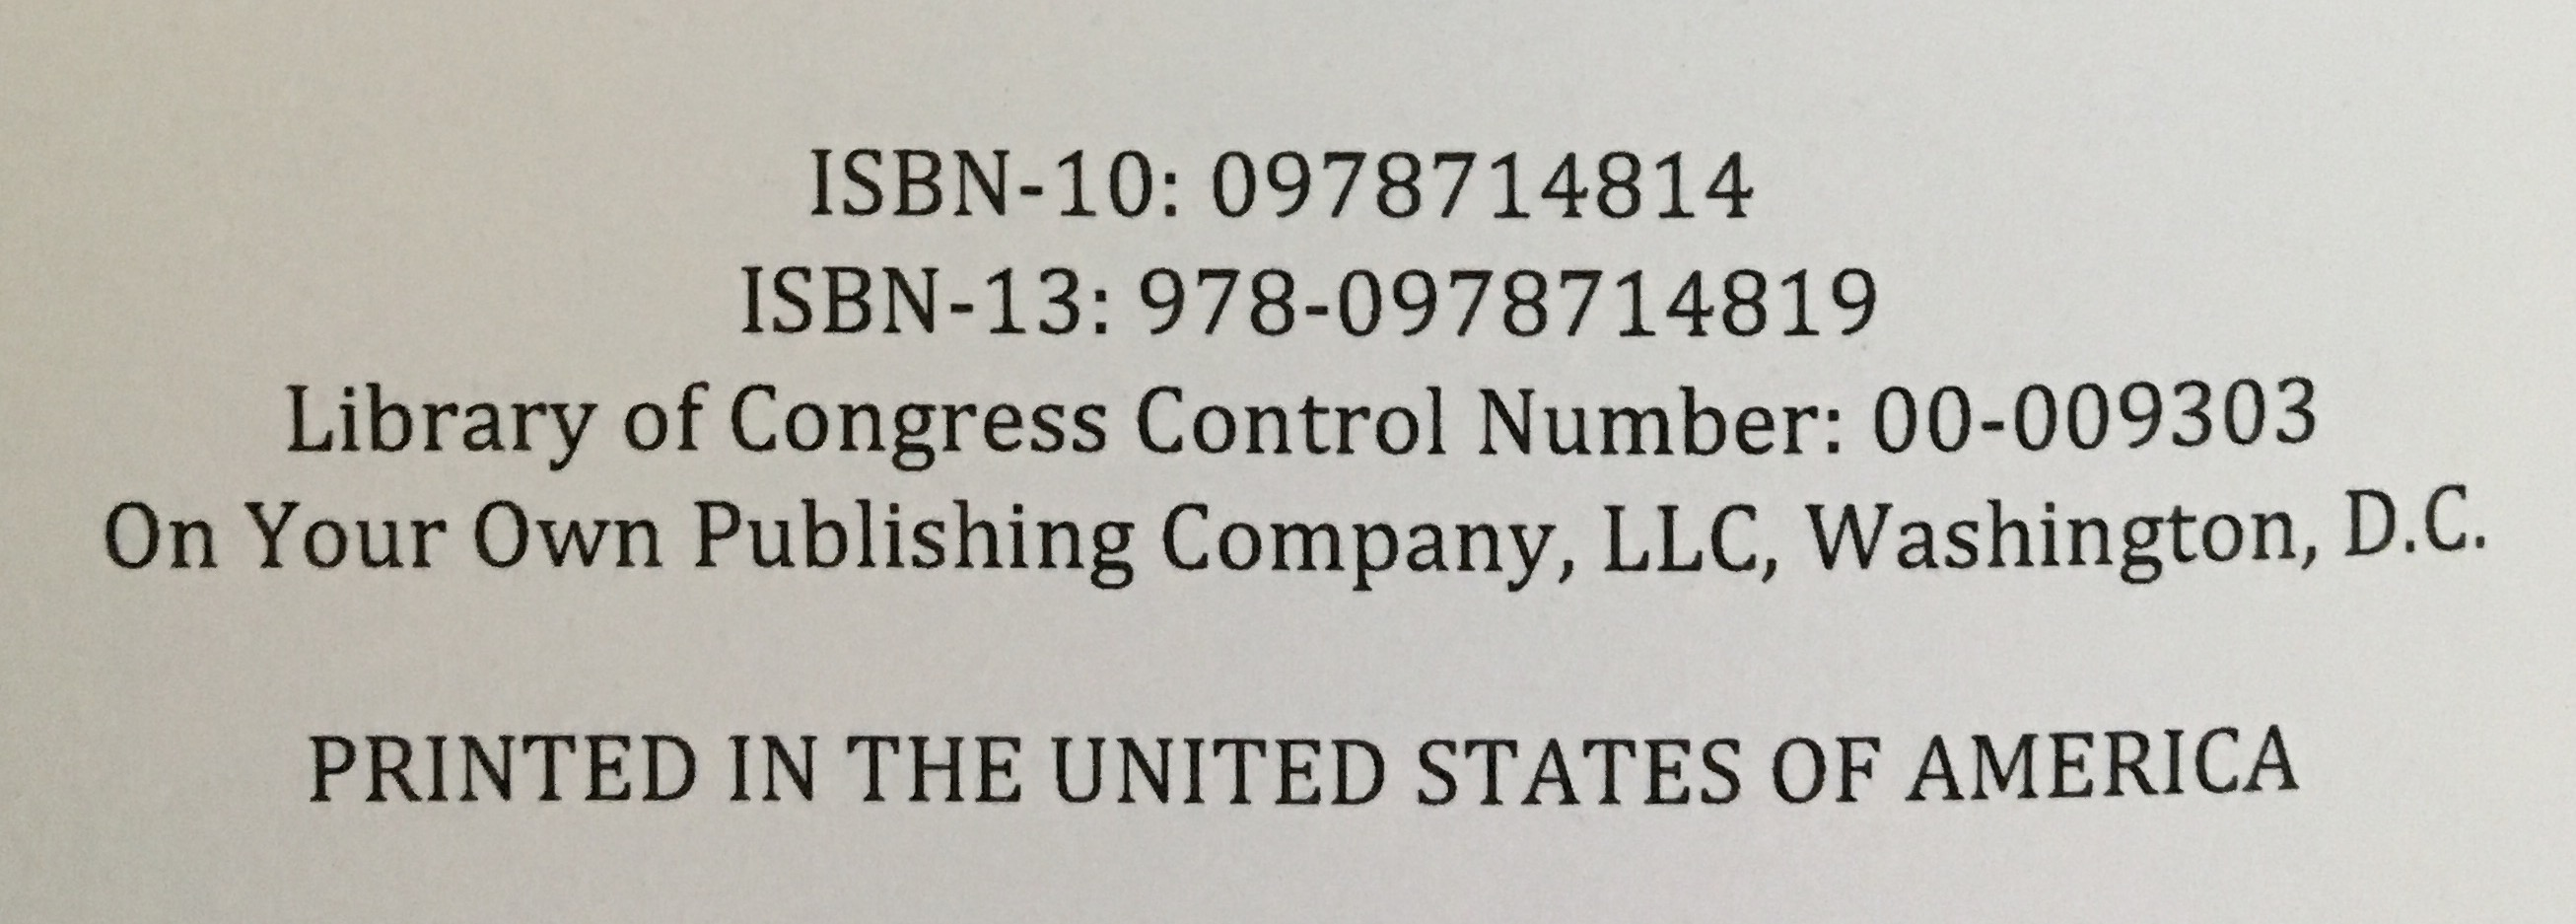 ISBN Number Example